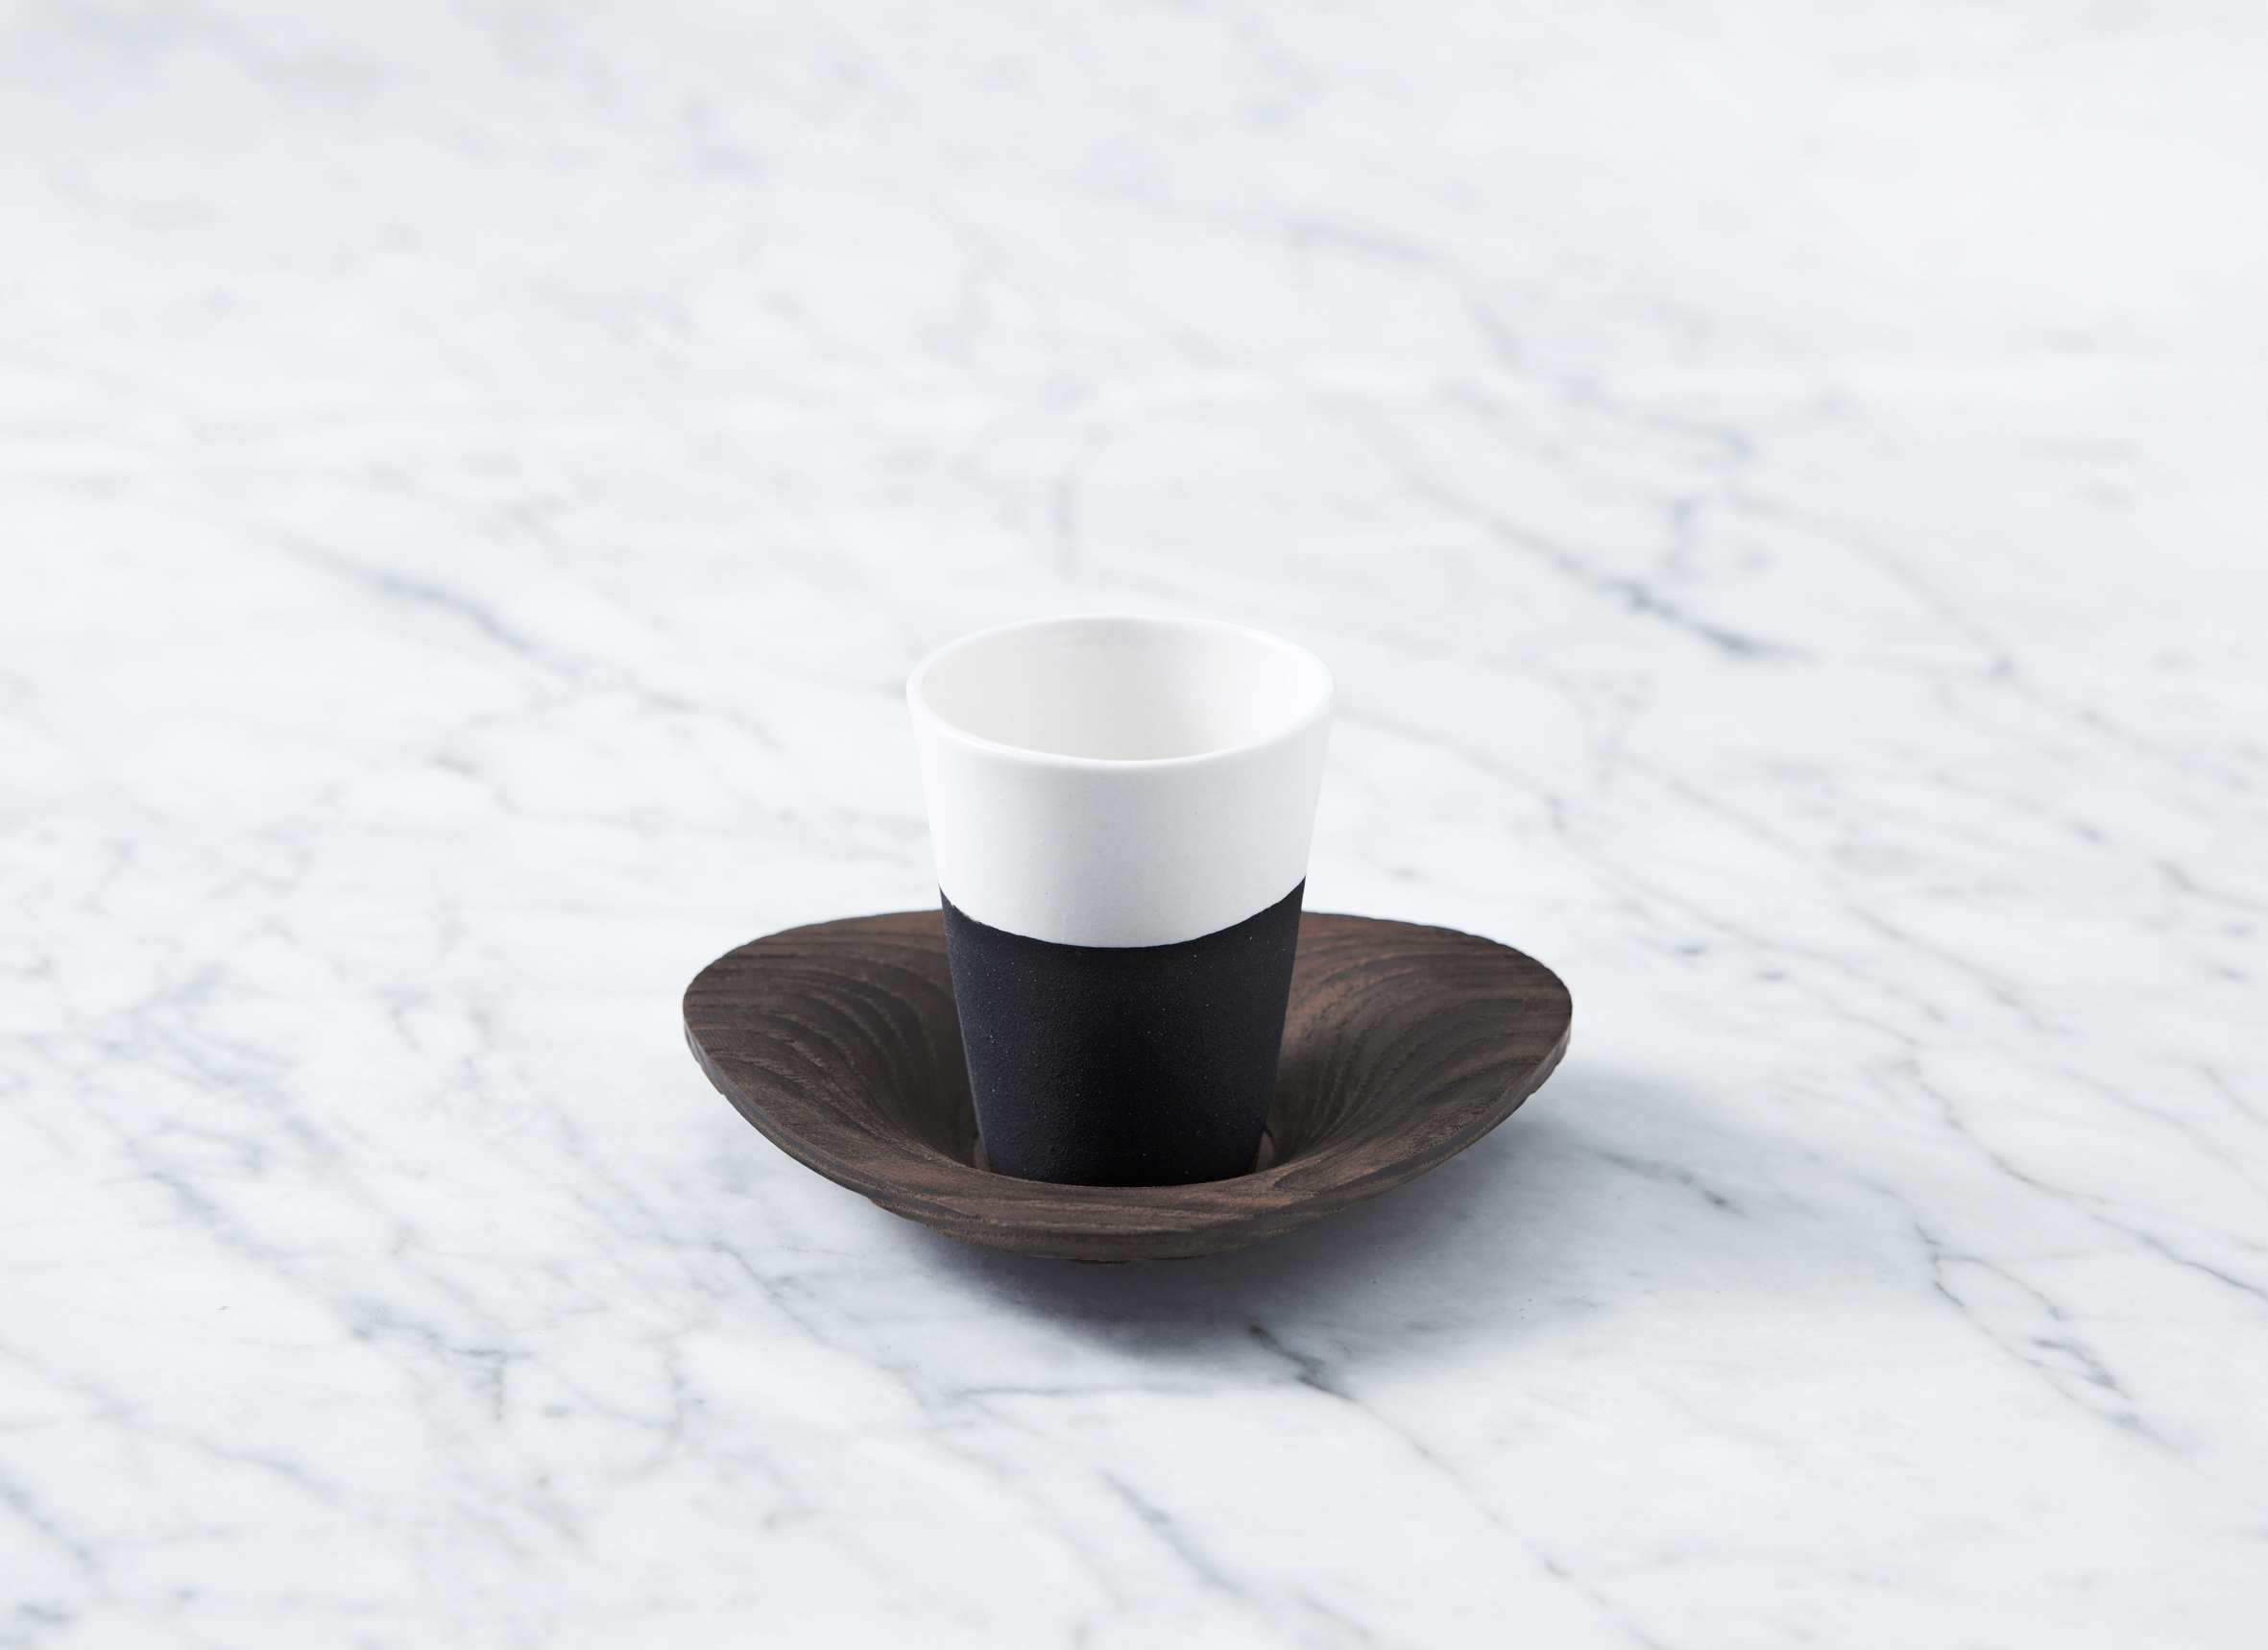 The St Ali porcelain cup and saucer set with turned ash saucer, designed by Fortynine Studio + TOH. Limted edition of 20 are available for $70 from the Campaign Store.  Go to www.theotherhemisphere.com for more.